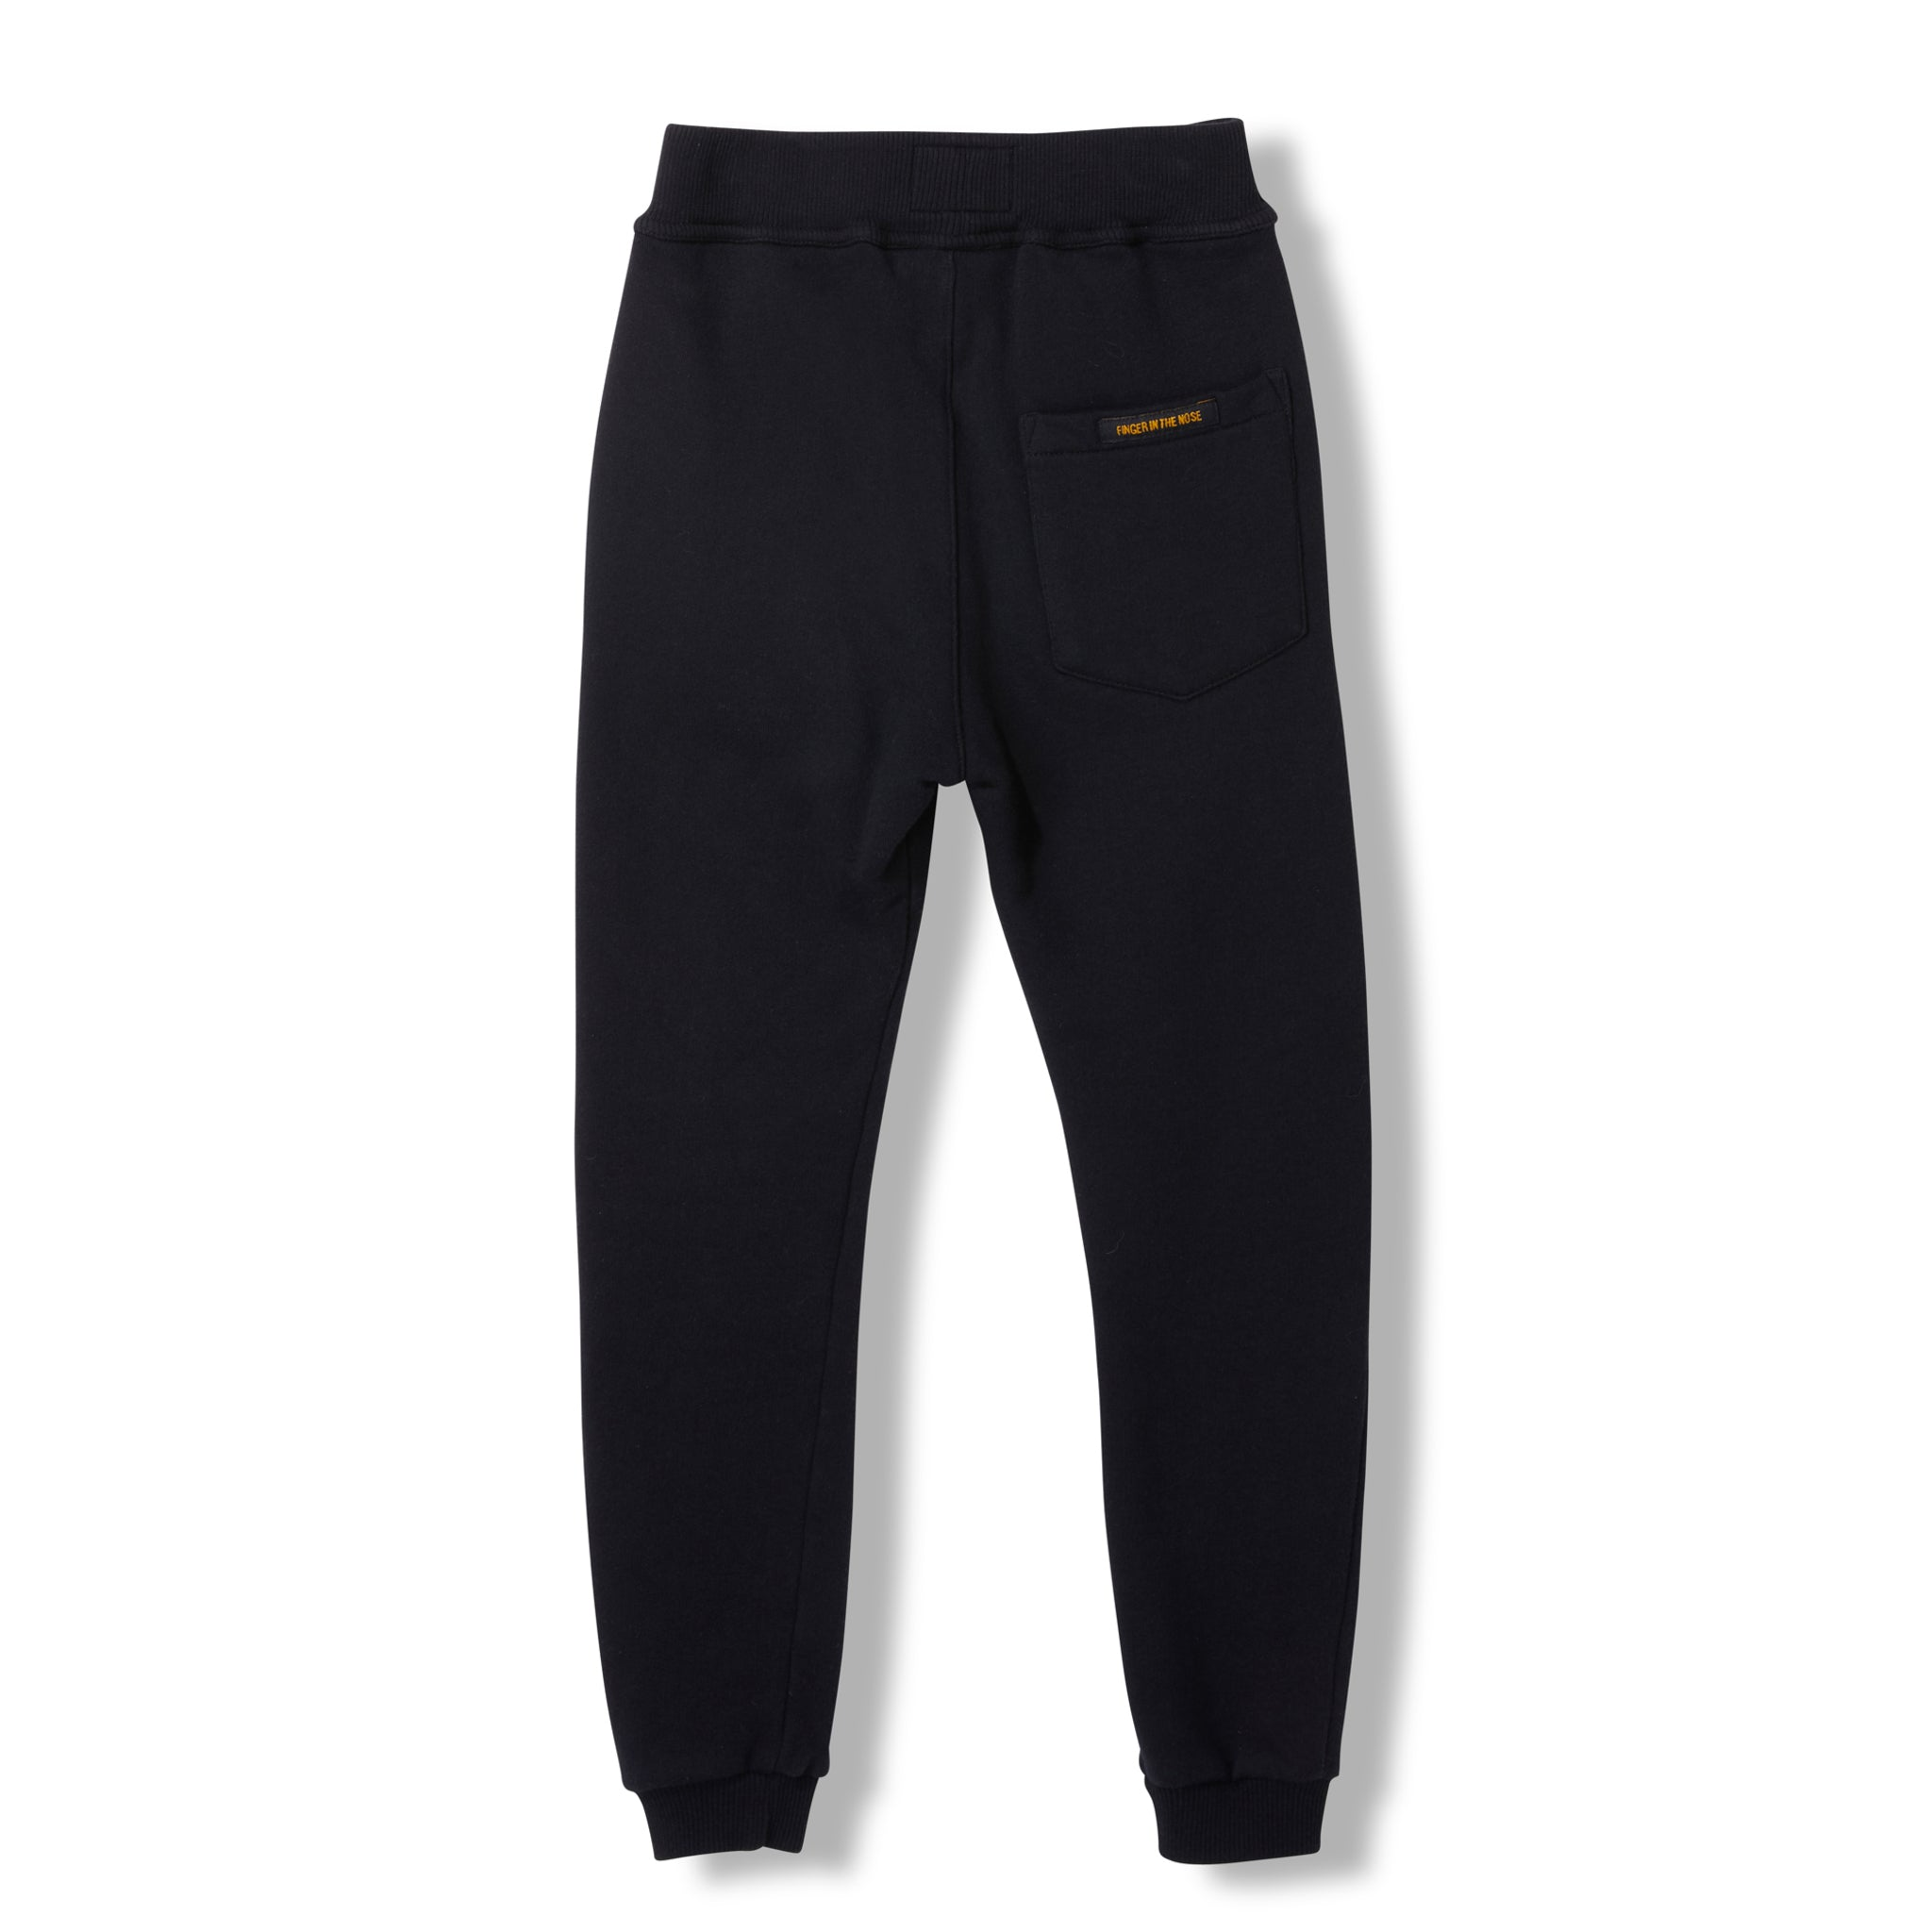 SPRINT Black -  Knitted Fleece Jogging Pant 2